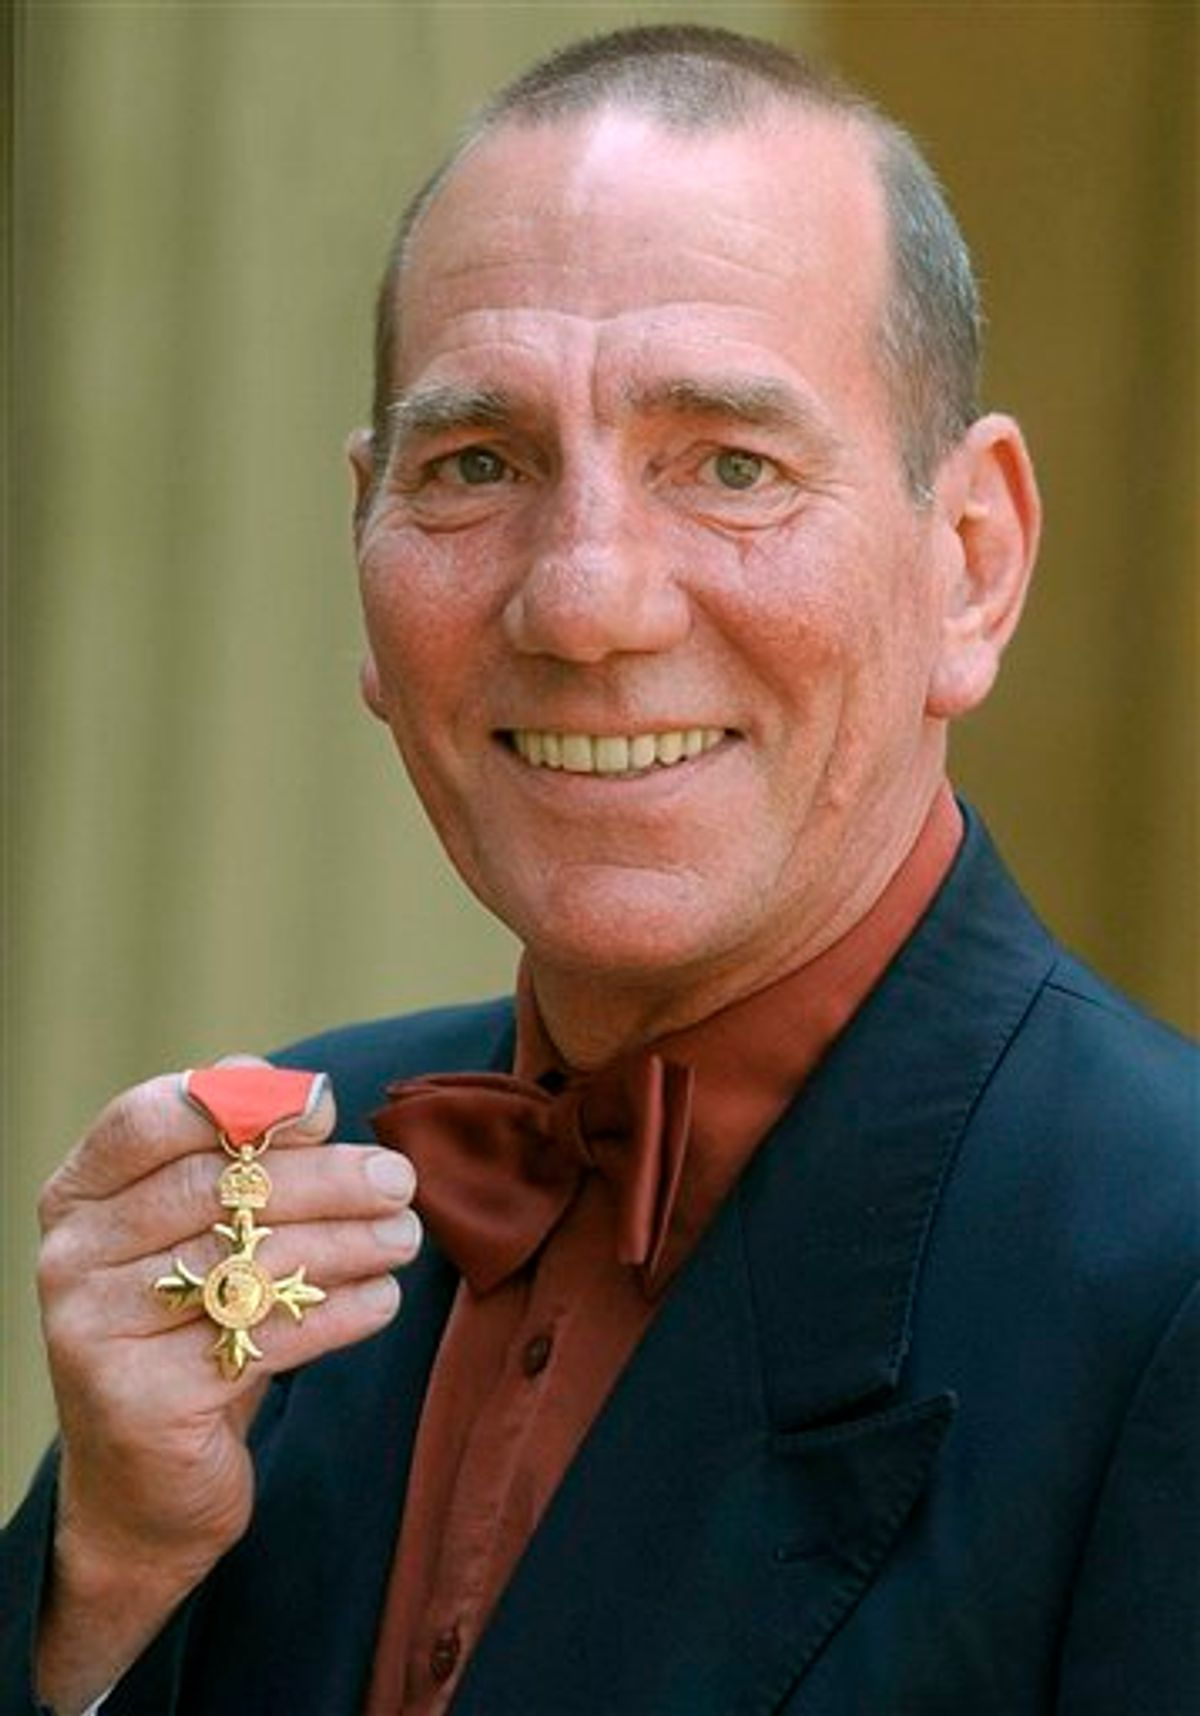 FILE -A Wednesday, June 9, 2004 photo from files showing  British actor Peter Postlethwaite displaying his Order of the British Empire or OBE, shortly after the presentation at Buckingham Palace in London.  Britain's Press Association is reporting Monday, Jan. 3, 2011 that decorated film actor Pete Postlethwaite has died at the age of 64. It quotes longtime friend Andrew Richardson as saying Monday that Postlethwaite died in hospital in Shropshire, central England, after a long illness. Richardson said Postlethwaite died Sunday. He had been receiving treatment for cancer.  (AP Photo /Kirsty Wigglesworth/ Pool) (AP)